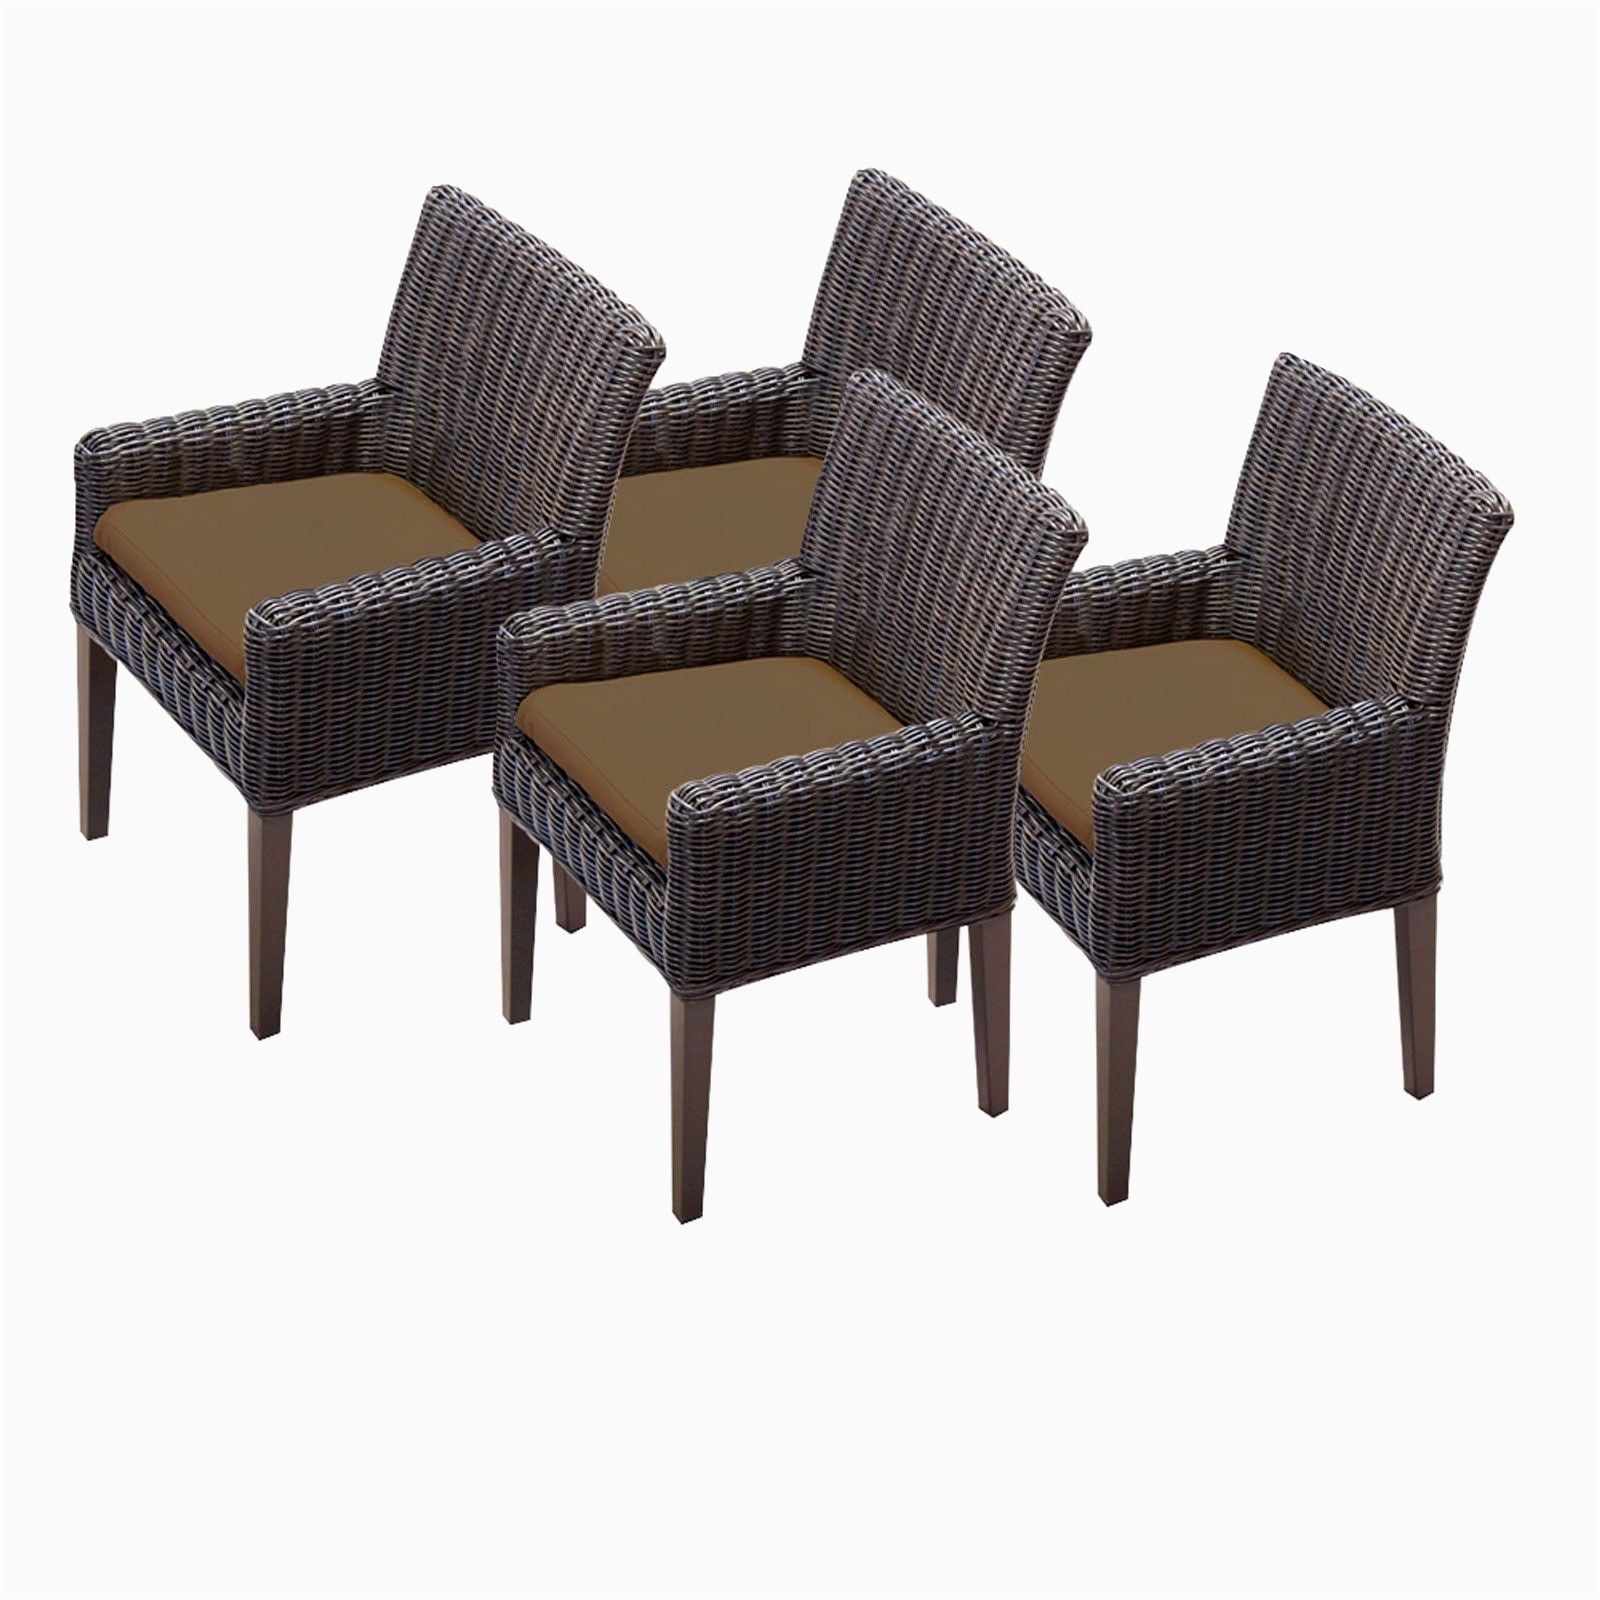 Dining Chairs Rattan Amazing Minimalist Turquoise Dining Chairs Model Modern House Ideas and Dining Chairs